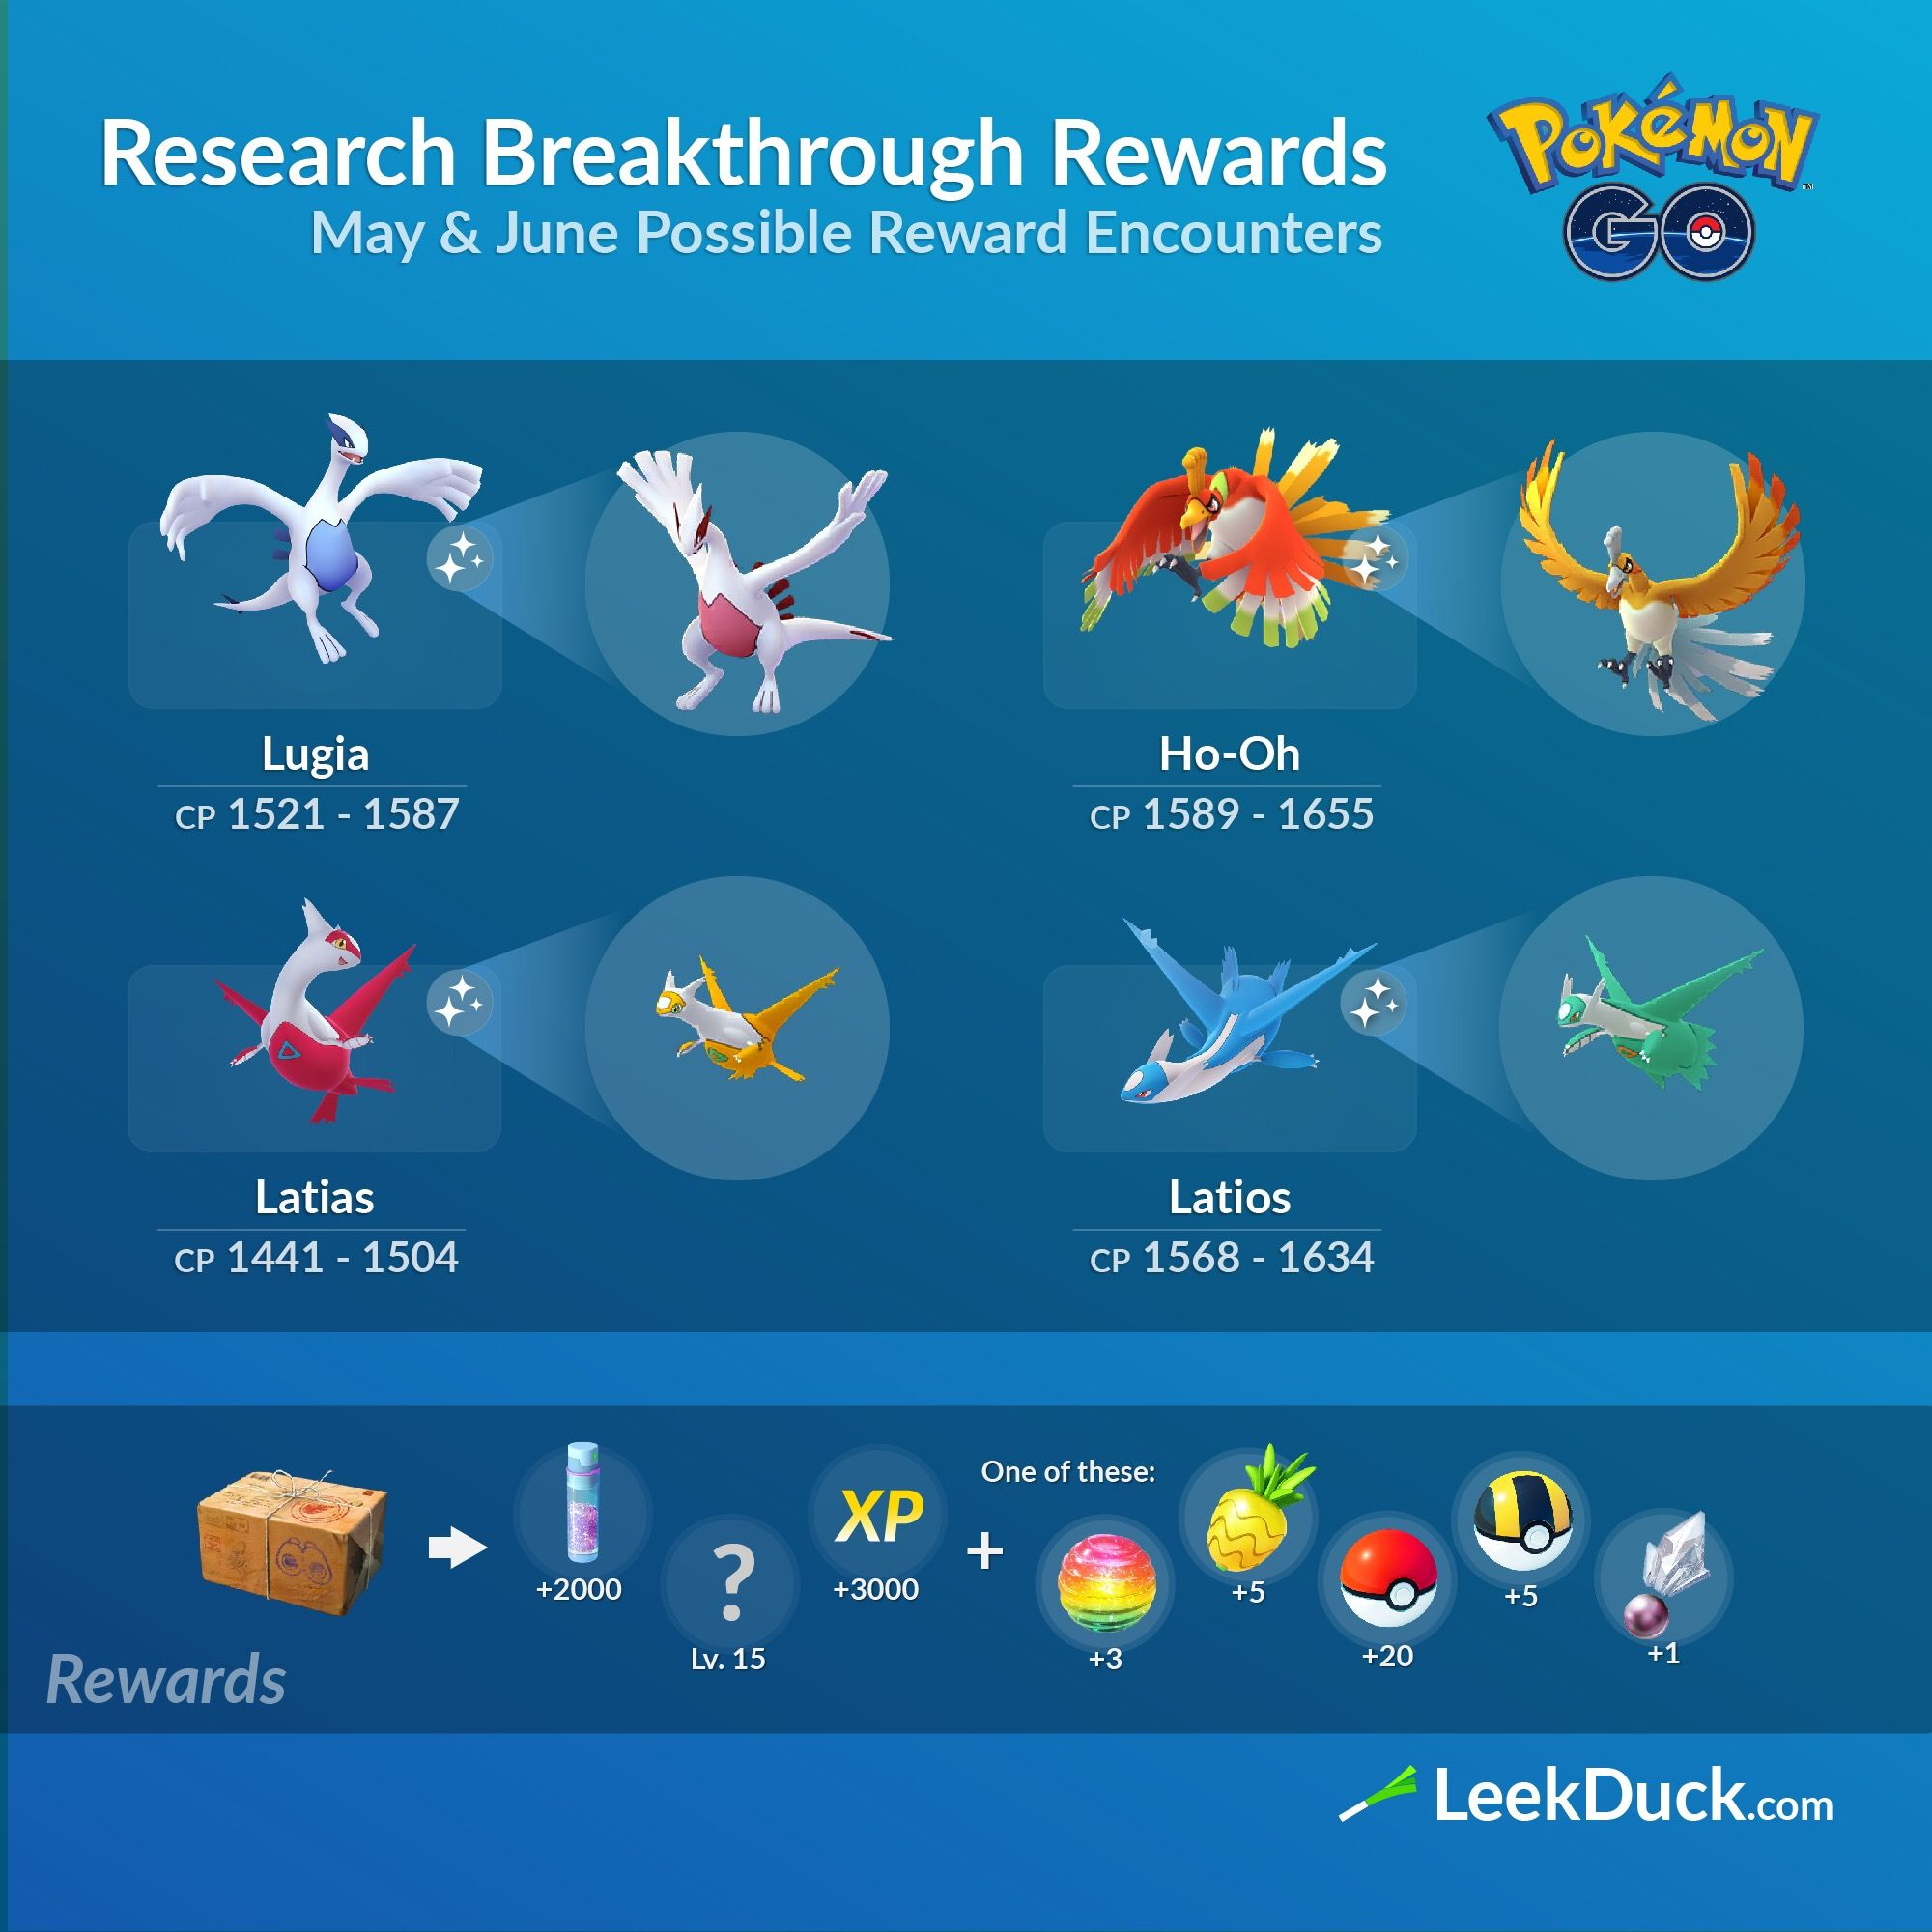 Pokémon go field research may 2019 Pokemon, Pokemon go